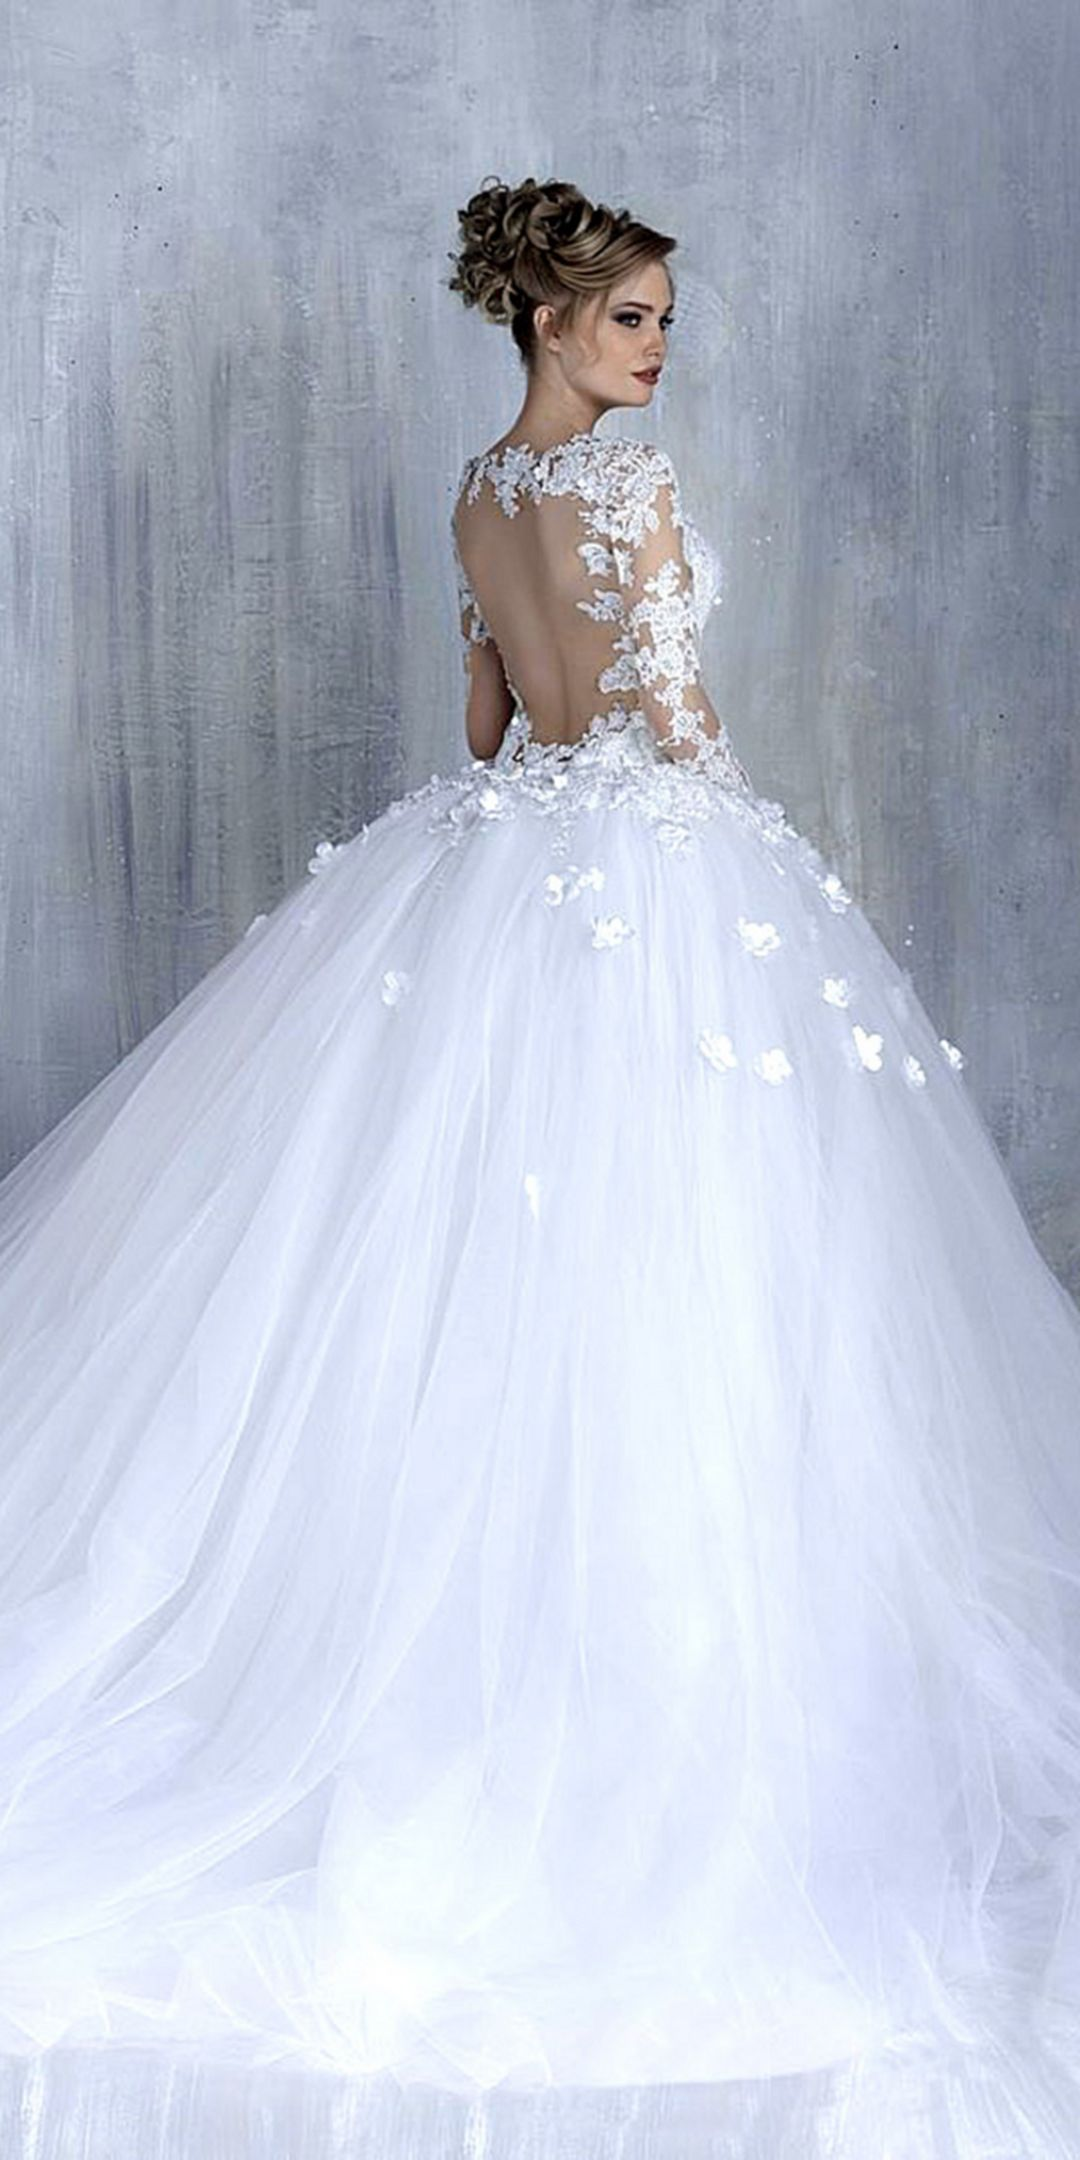 Design your own wedding dress near me   Most Beautiful White Wedding Dress Ball Gown Ideas For The